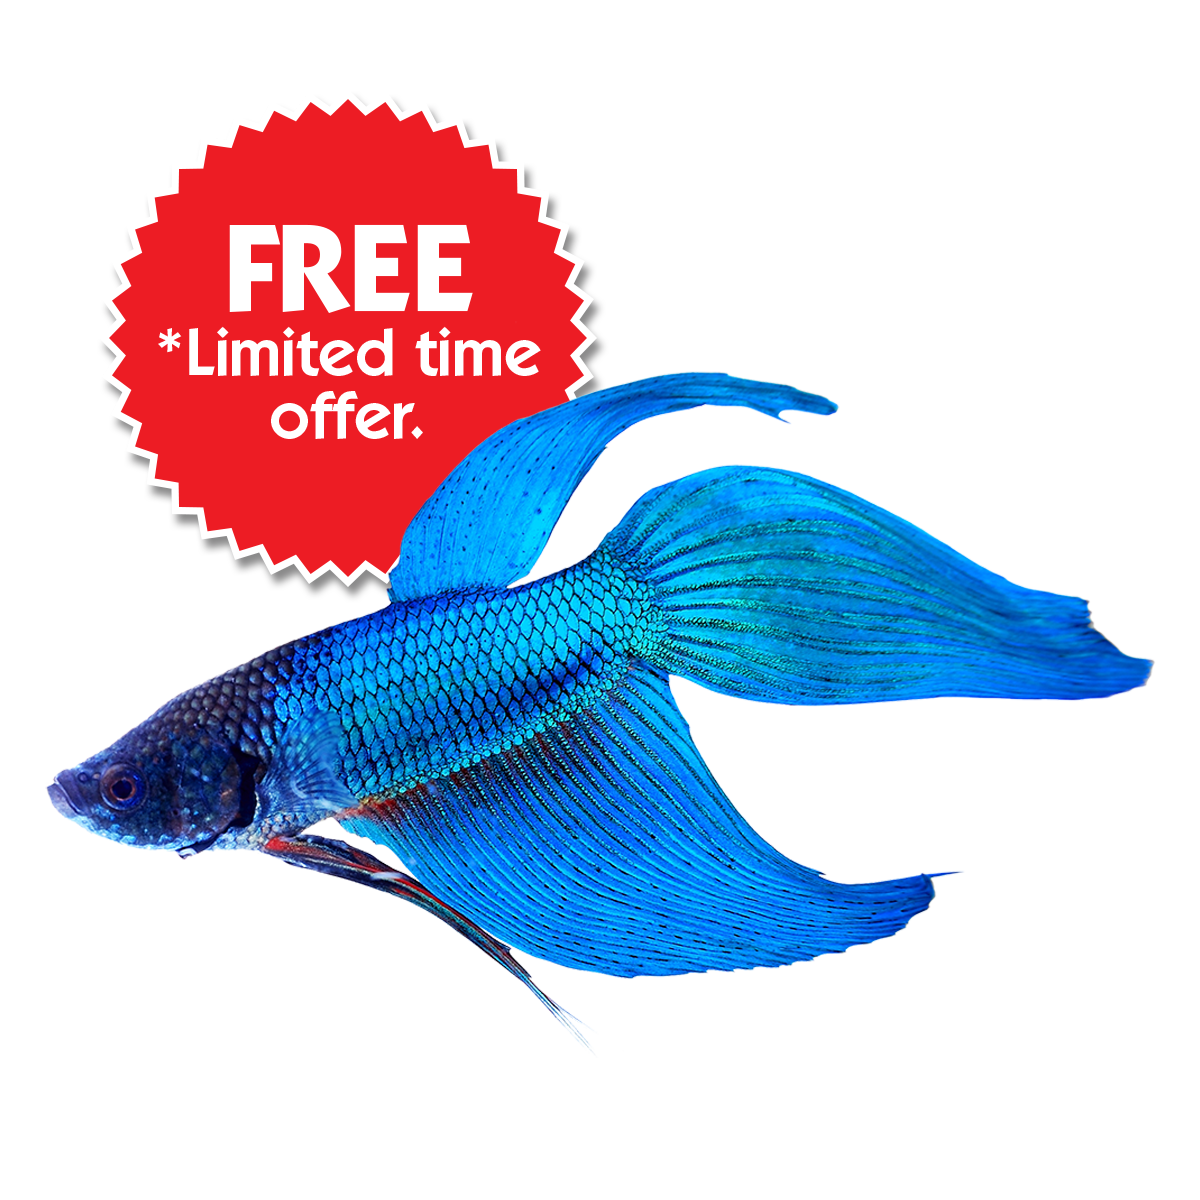 Beta fish clipart black and white picture transparent stock Buy Betta Fish Online & Save On Fish Bowl Kits | Home | GoBetta picture transparent stock